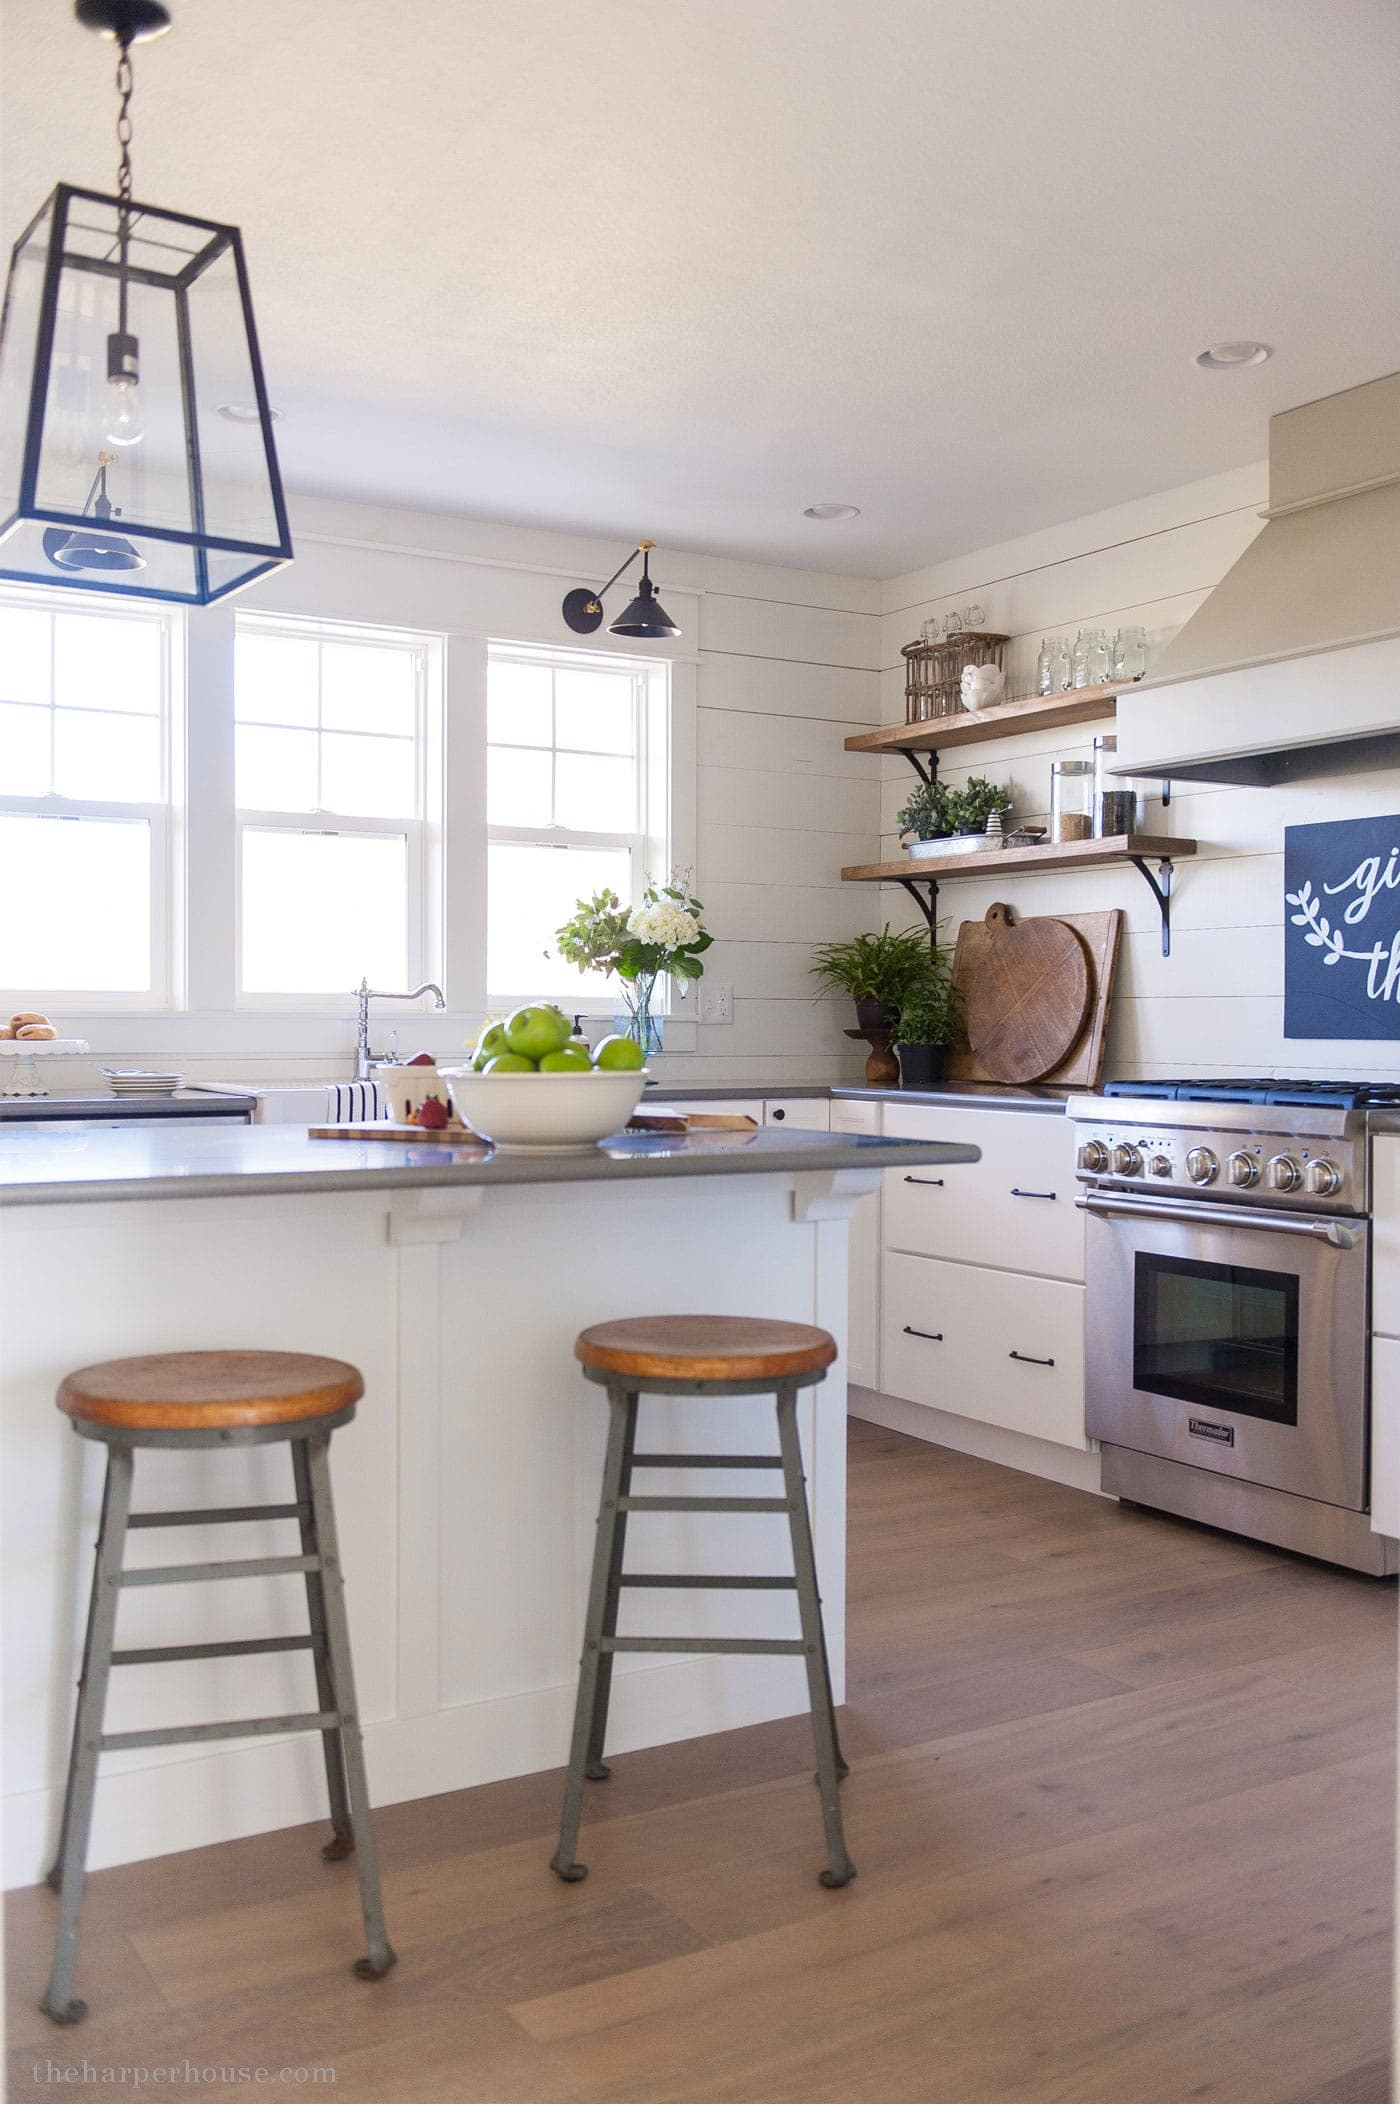 Farmhouse style kitchen details the harper house - Farmhouse style kitchen cabinets ...